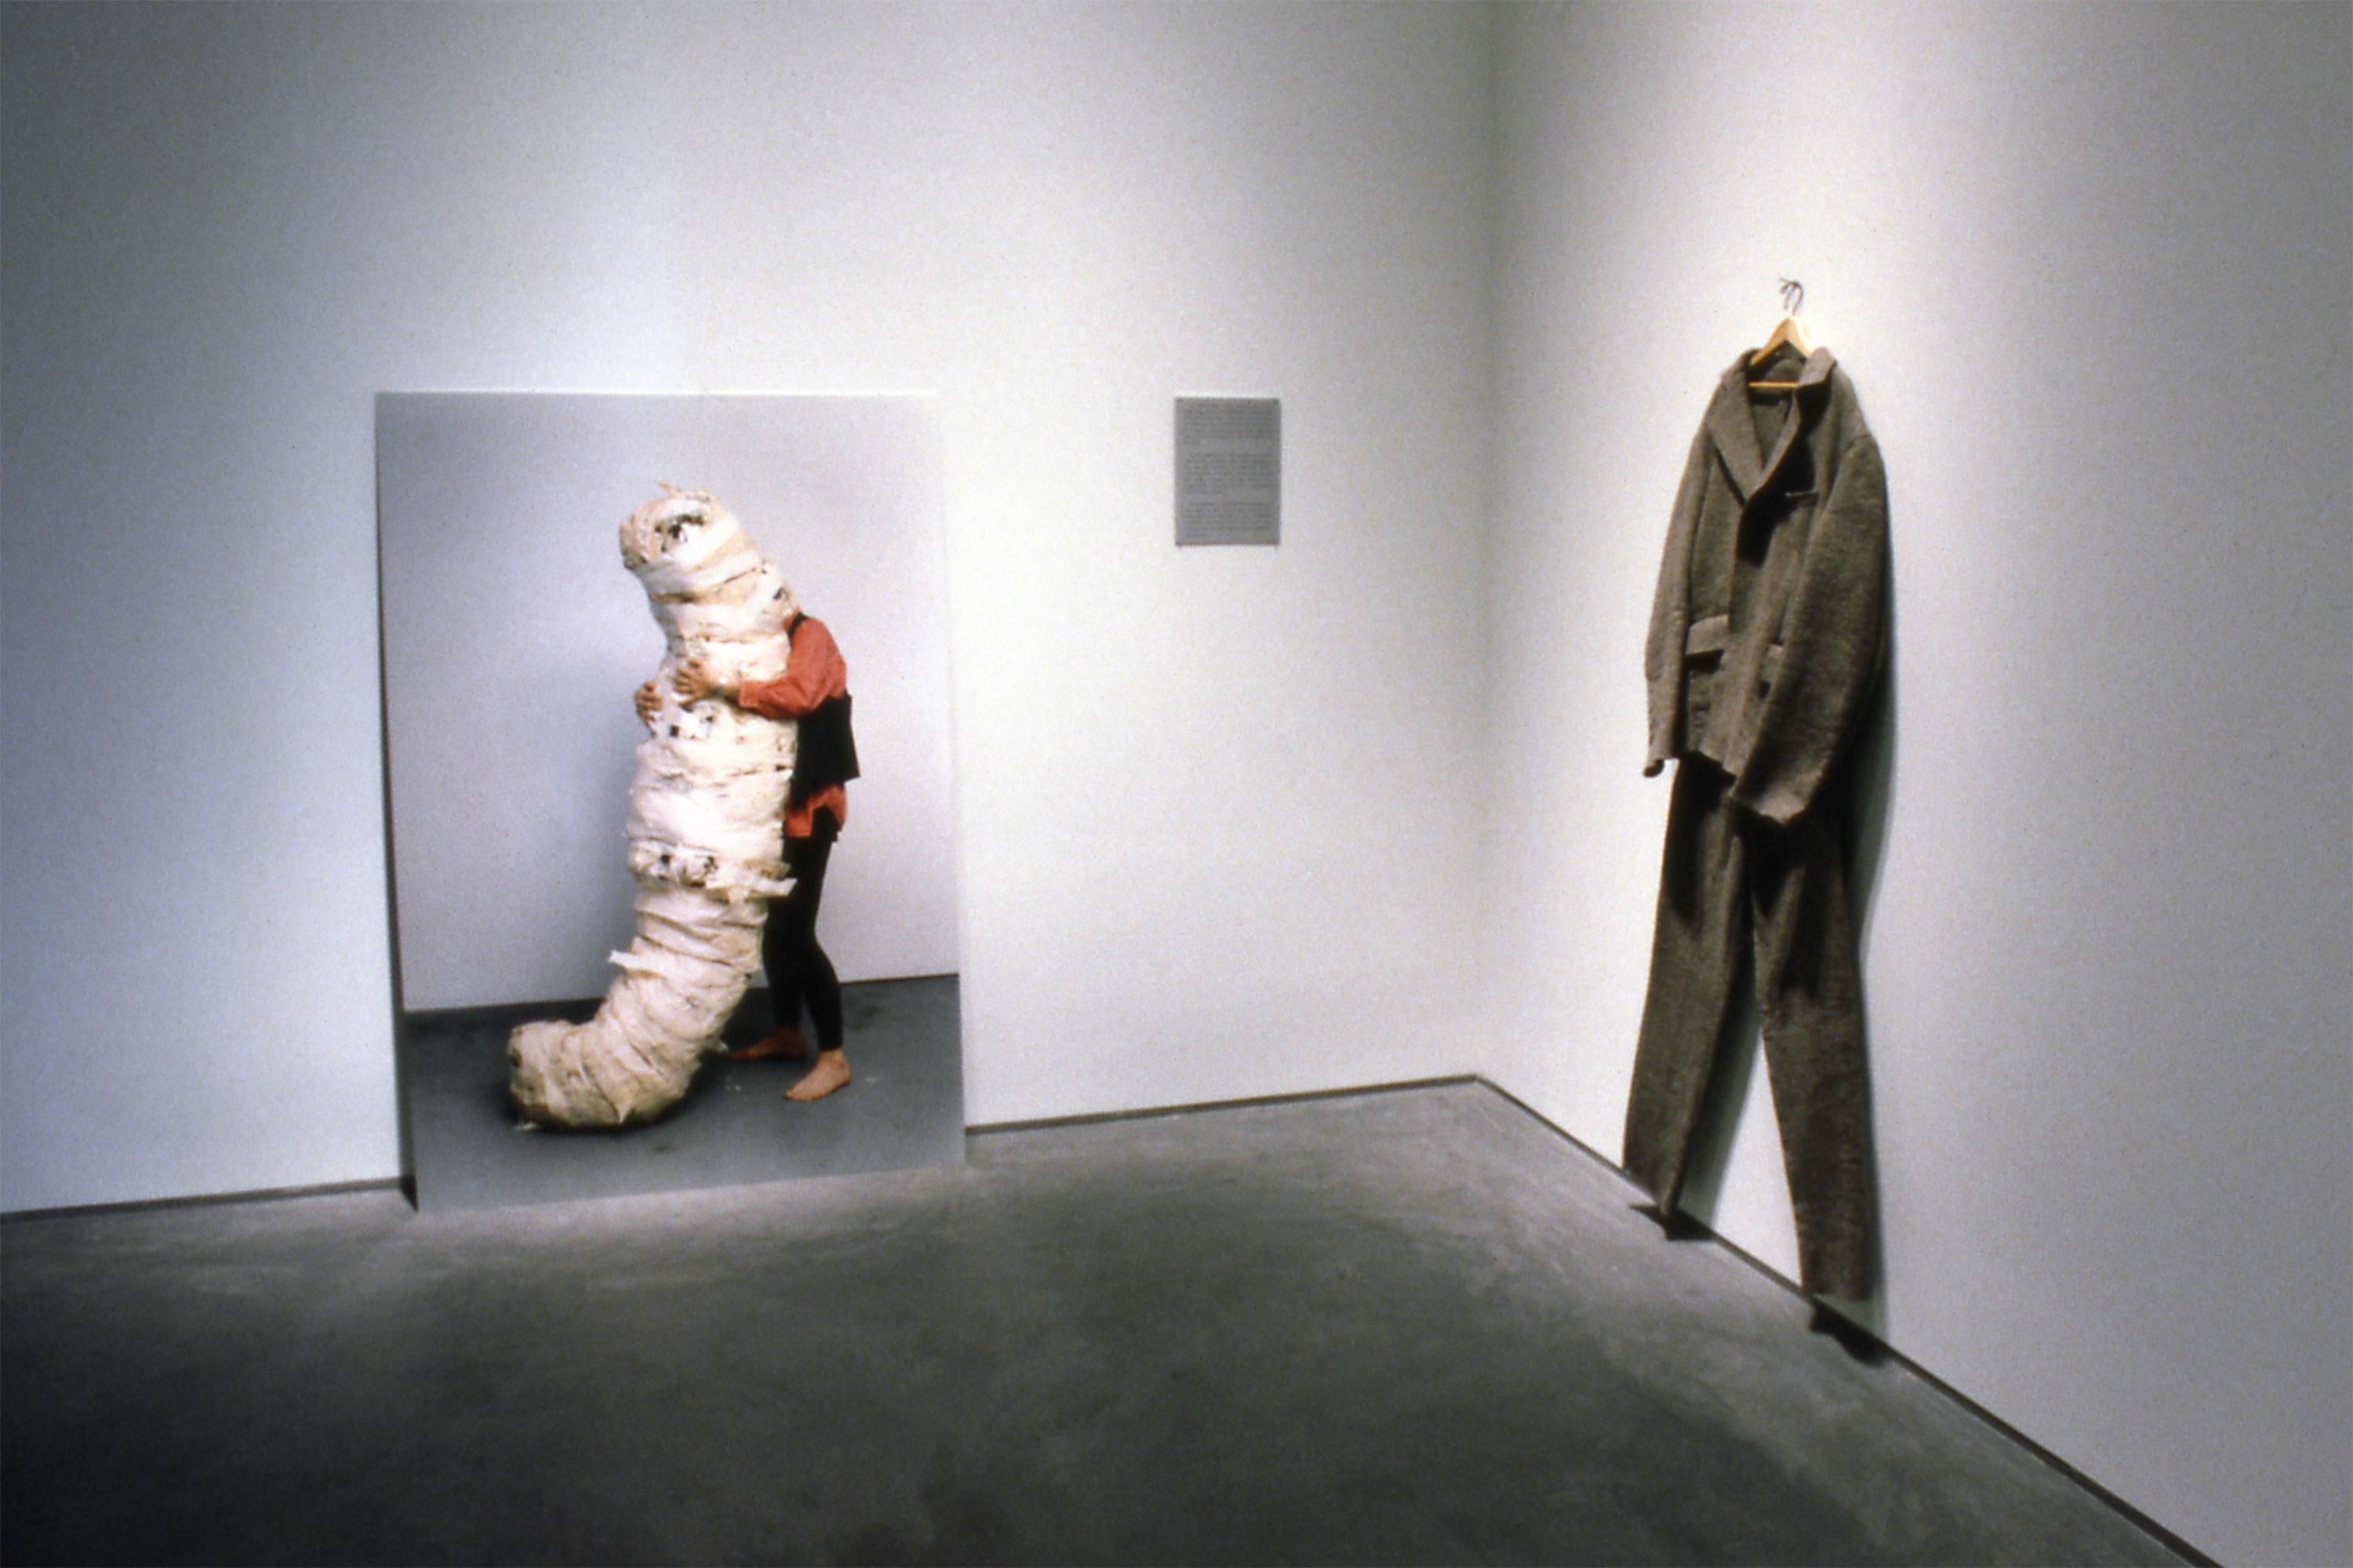 A gallery view of two works of art; one a large photo and other a suit on a hanger.